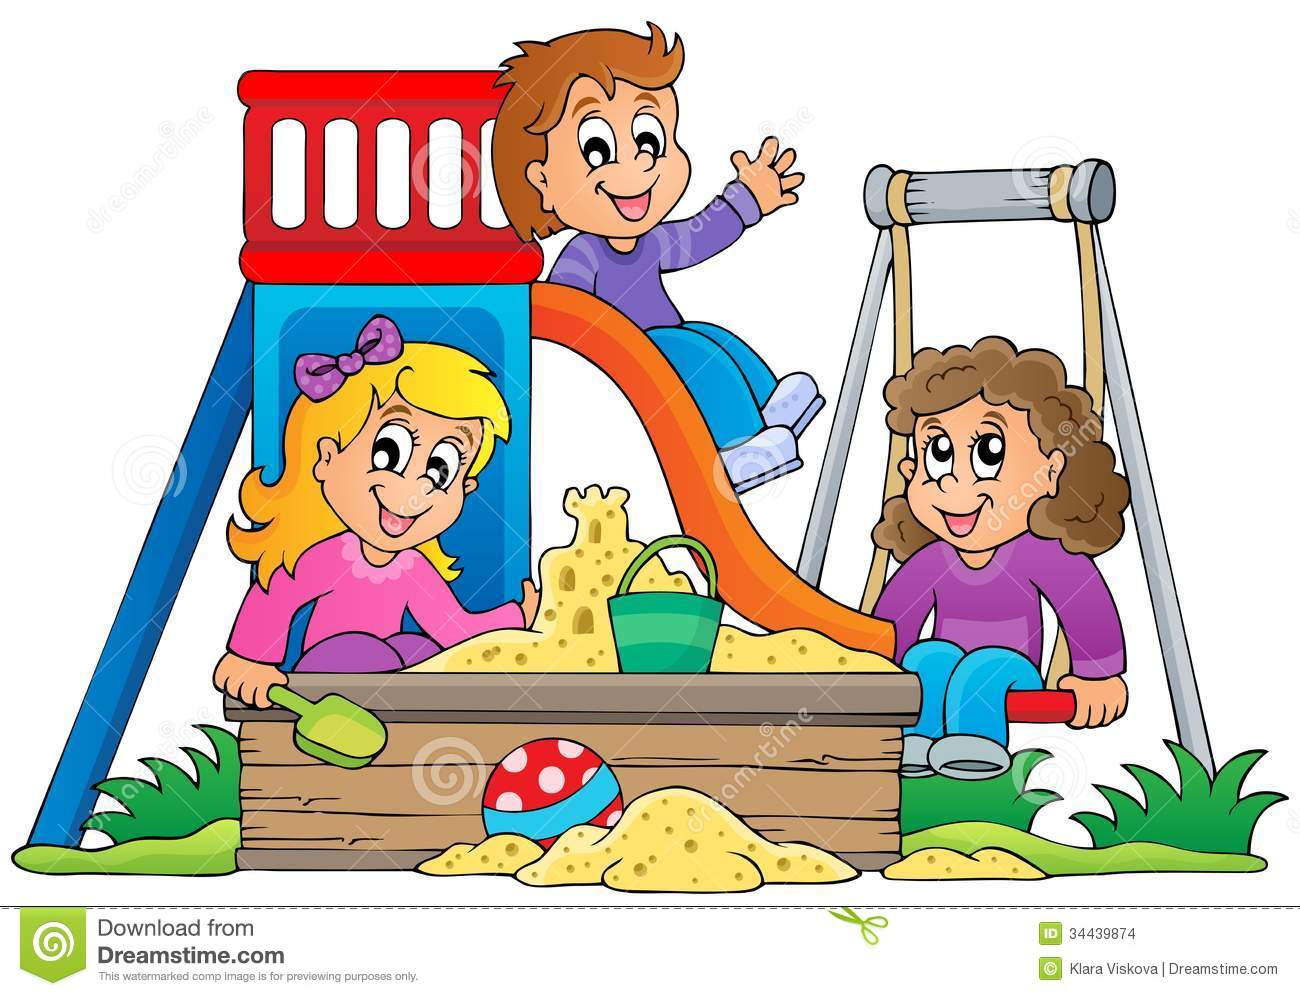 Kids playing on school playground clipart.